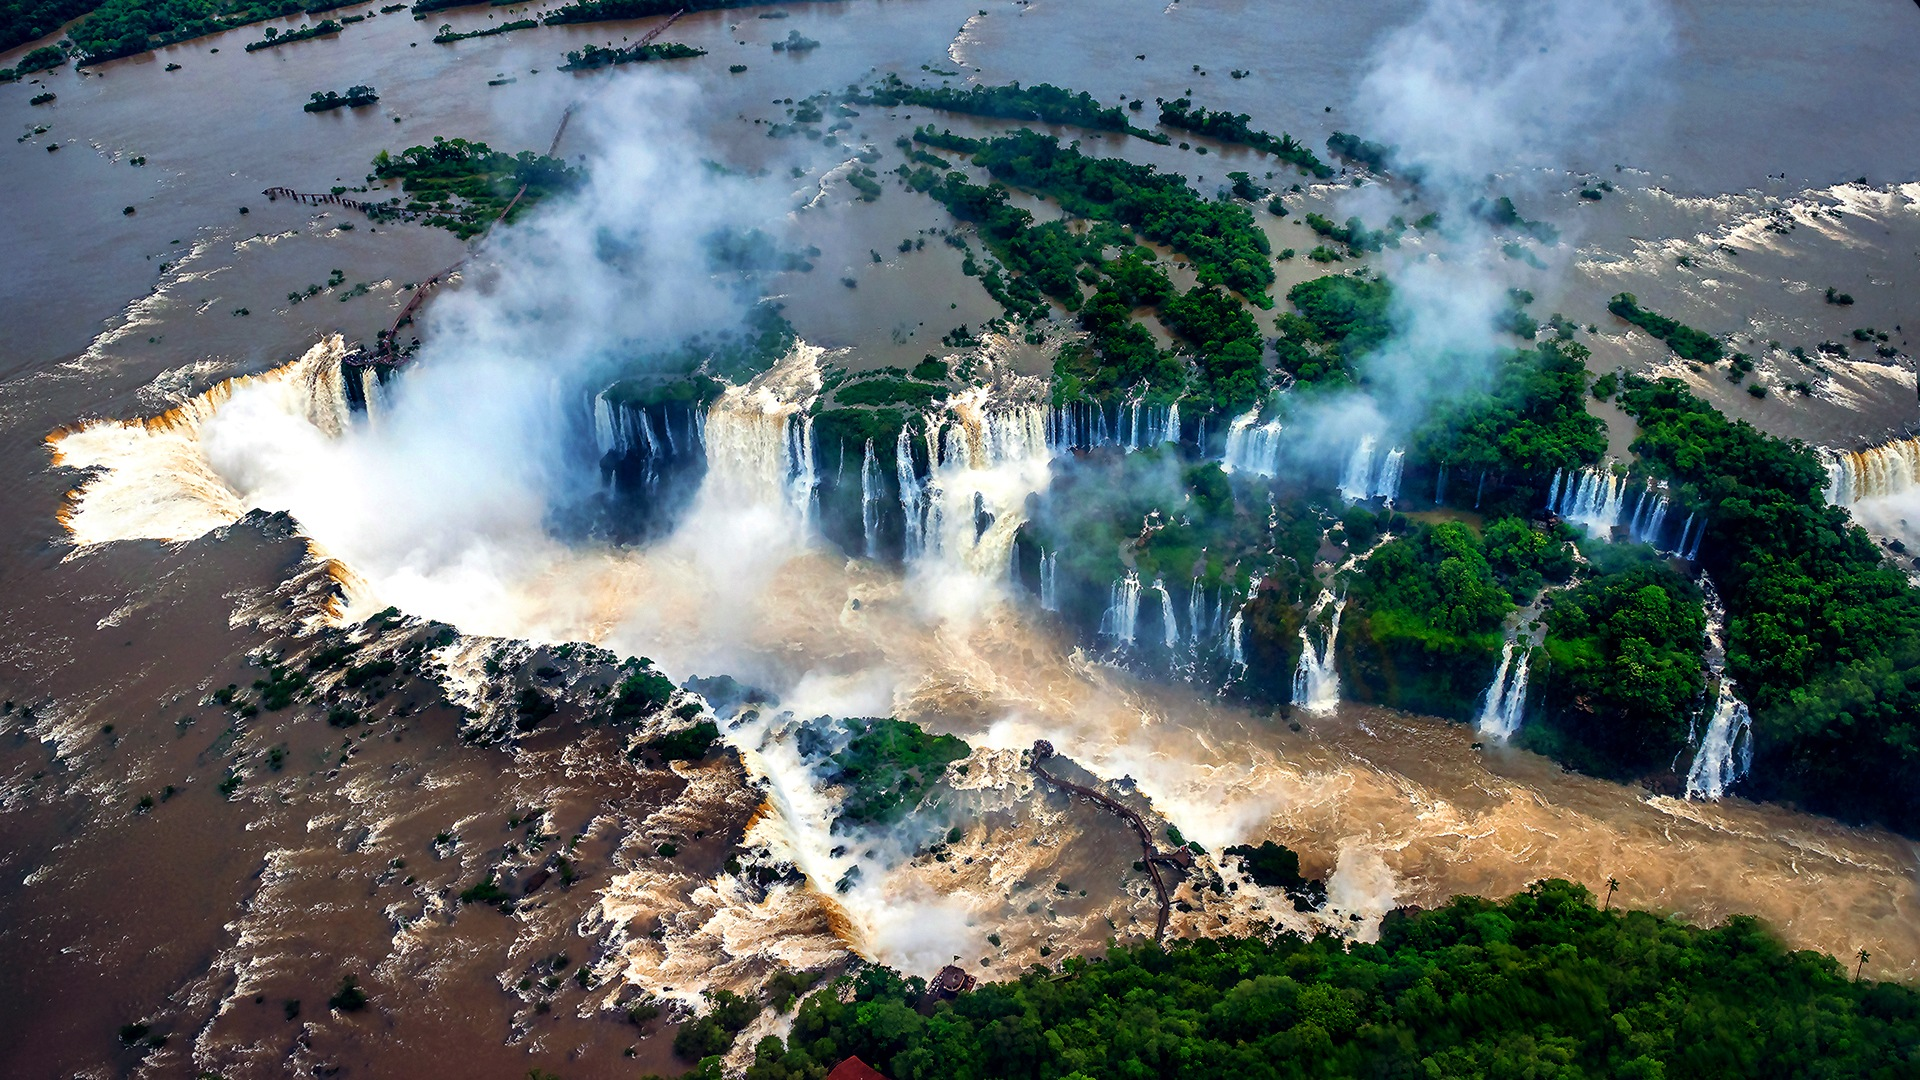 Foz do Iguaçu National Park - Brazil by Fran Camargo